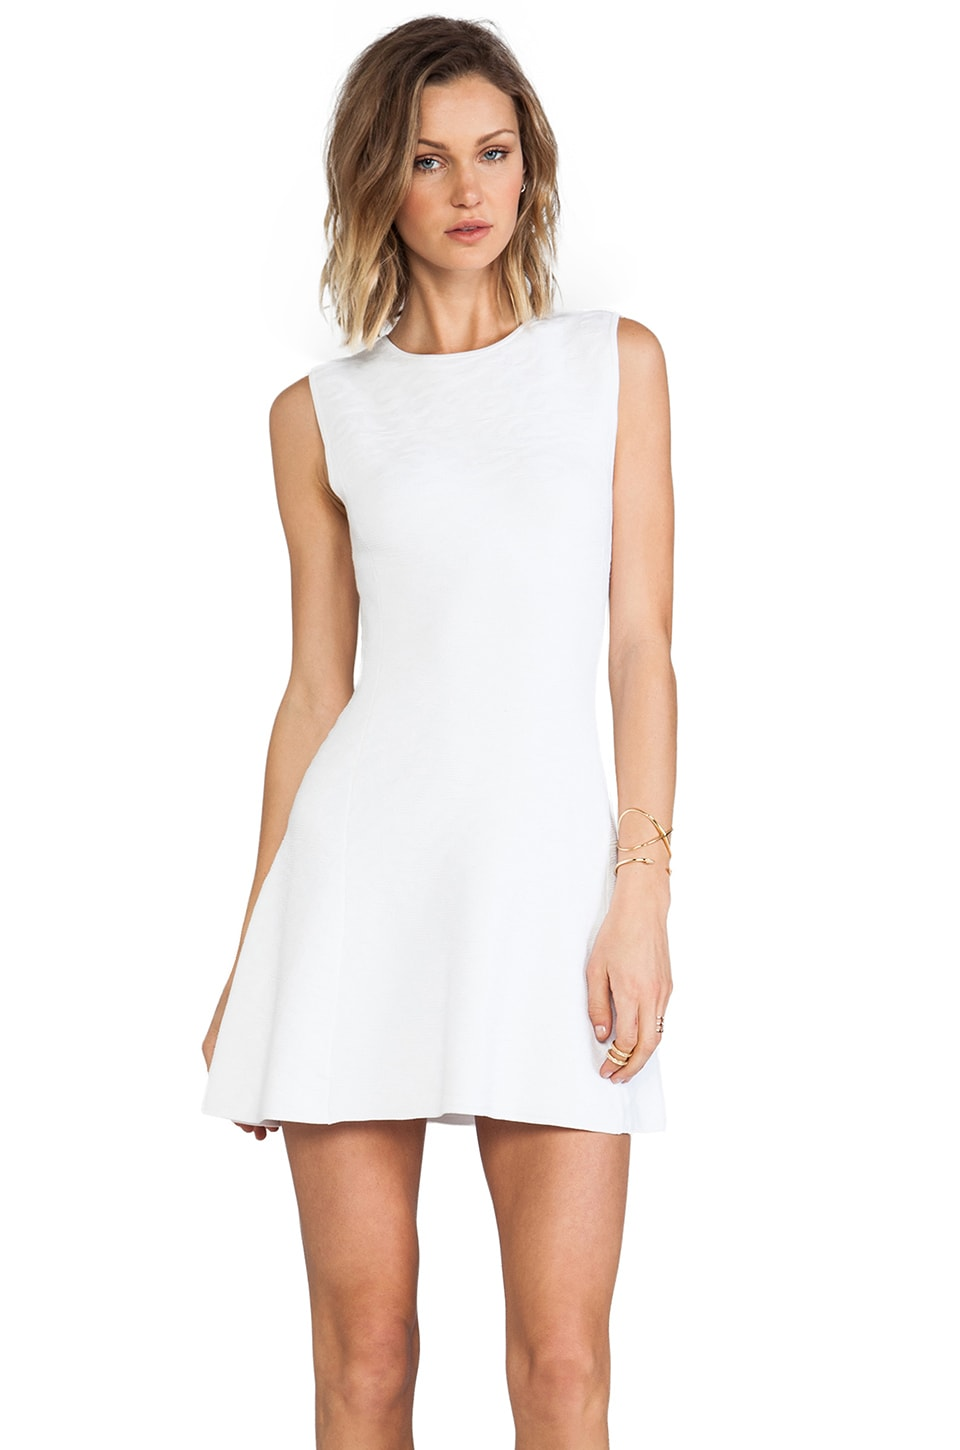 Theory Nikayla Dress in White